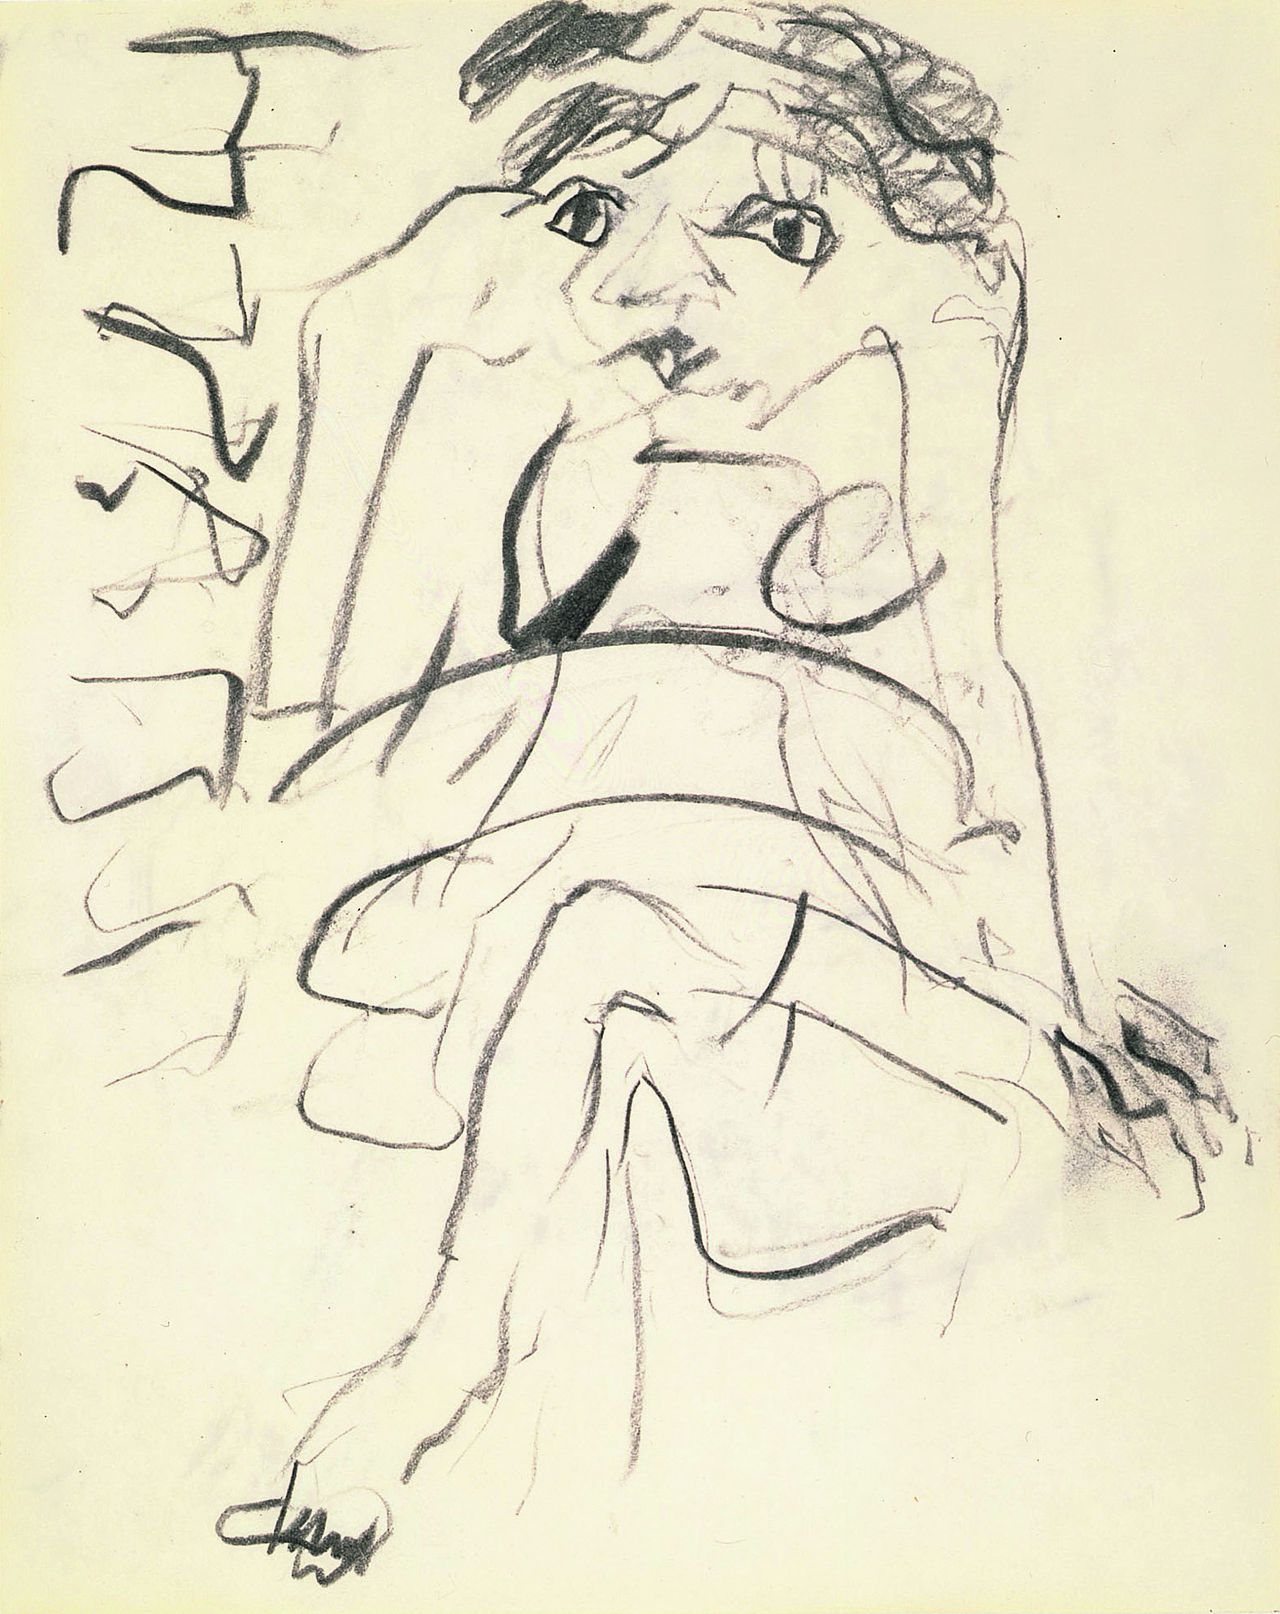 Detail van één van de tekeningen van Willem de Kooning uit de serie Drawings with Eyes Closed.